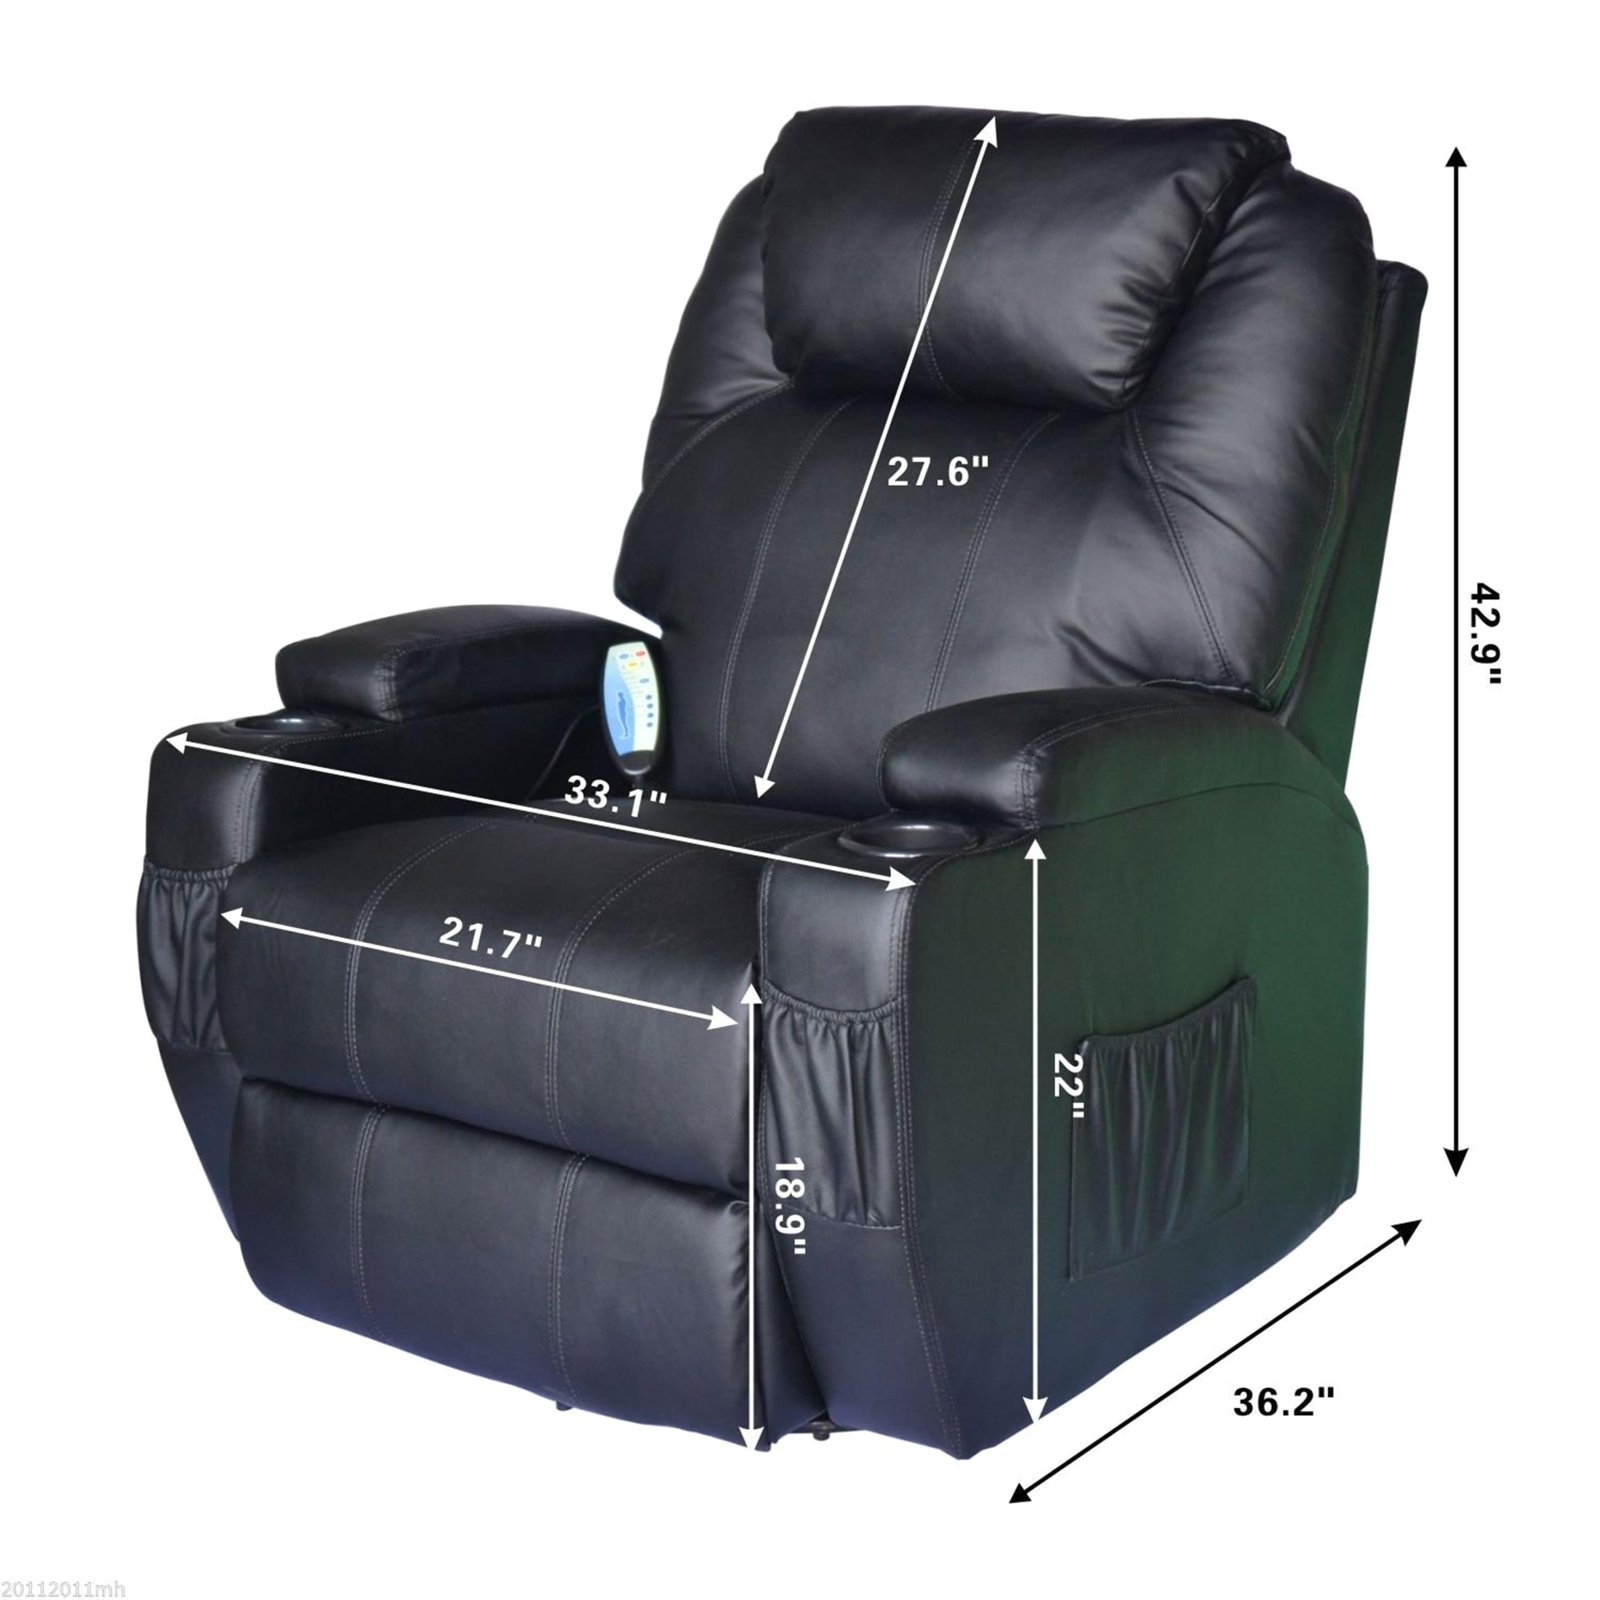 sears recliner chairs lazy boy rocker swivel homcom 360 massage chair marketplace 34 with remote black 1